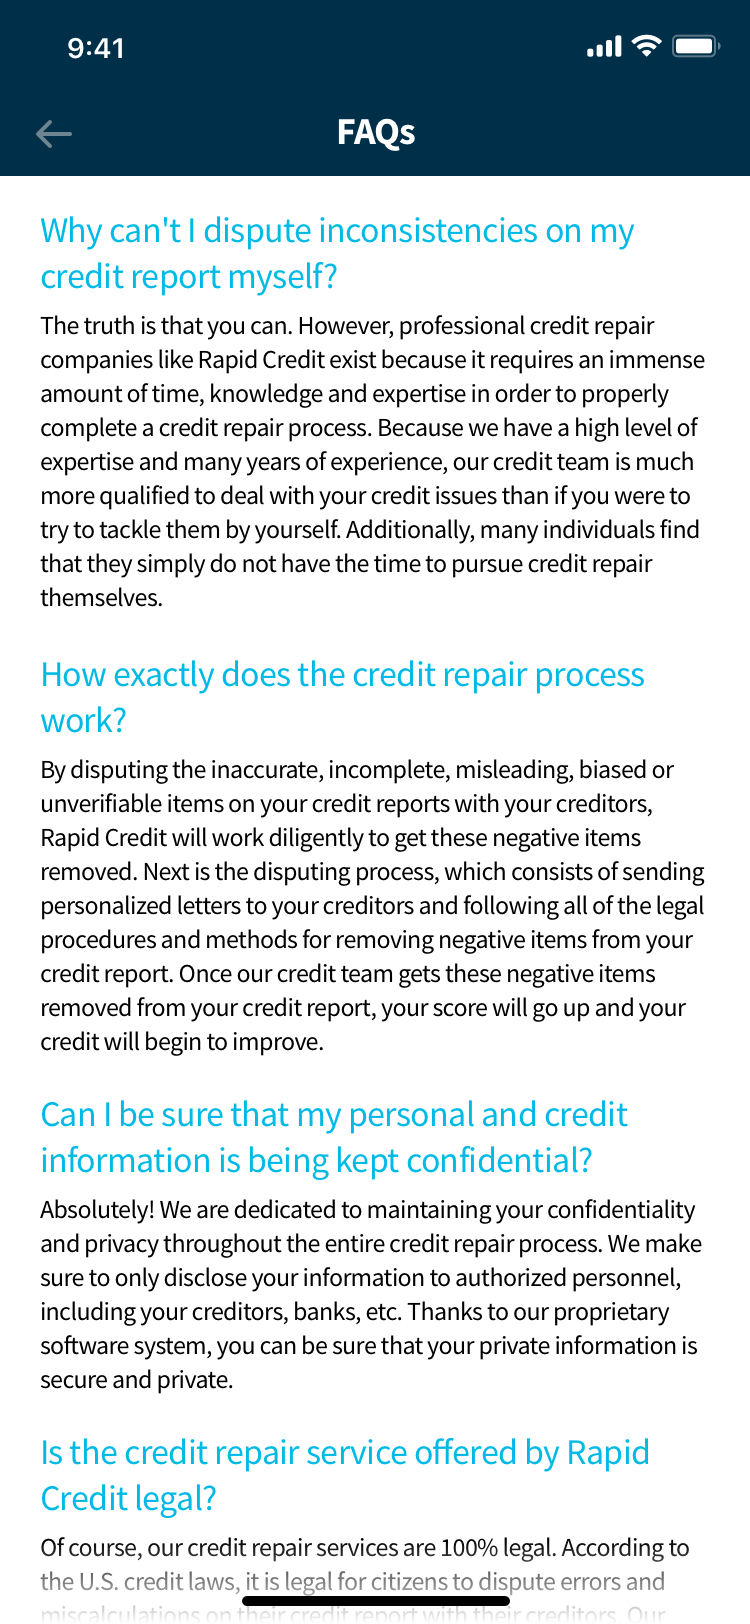 rapidcredit-faq